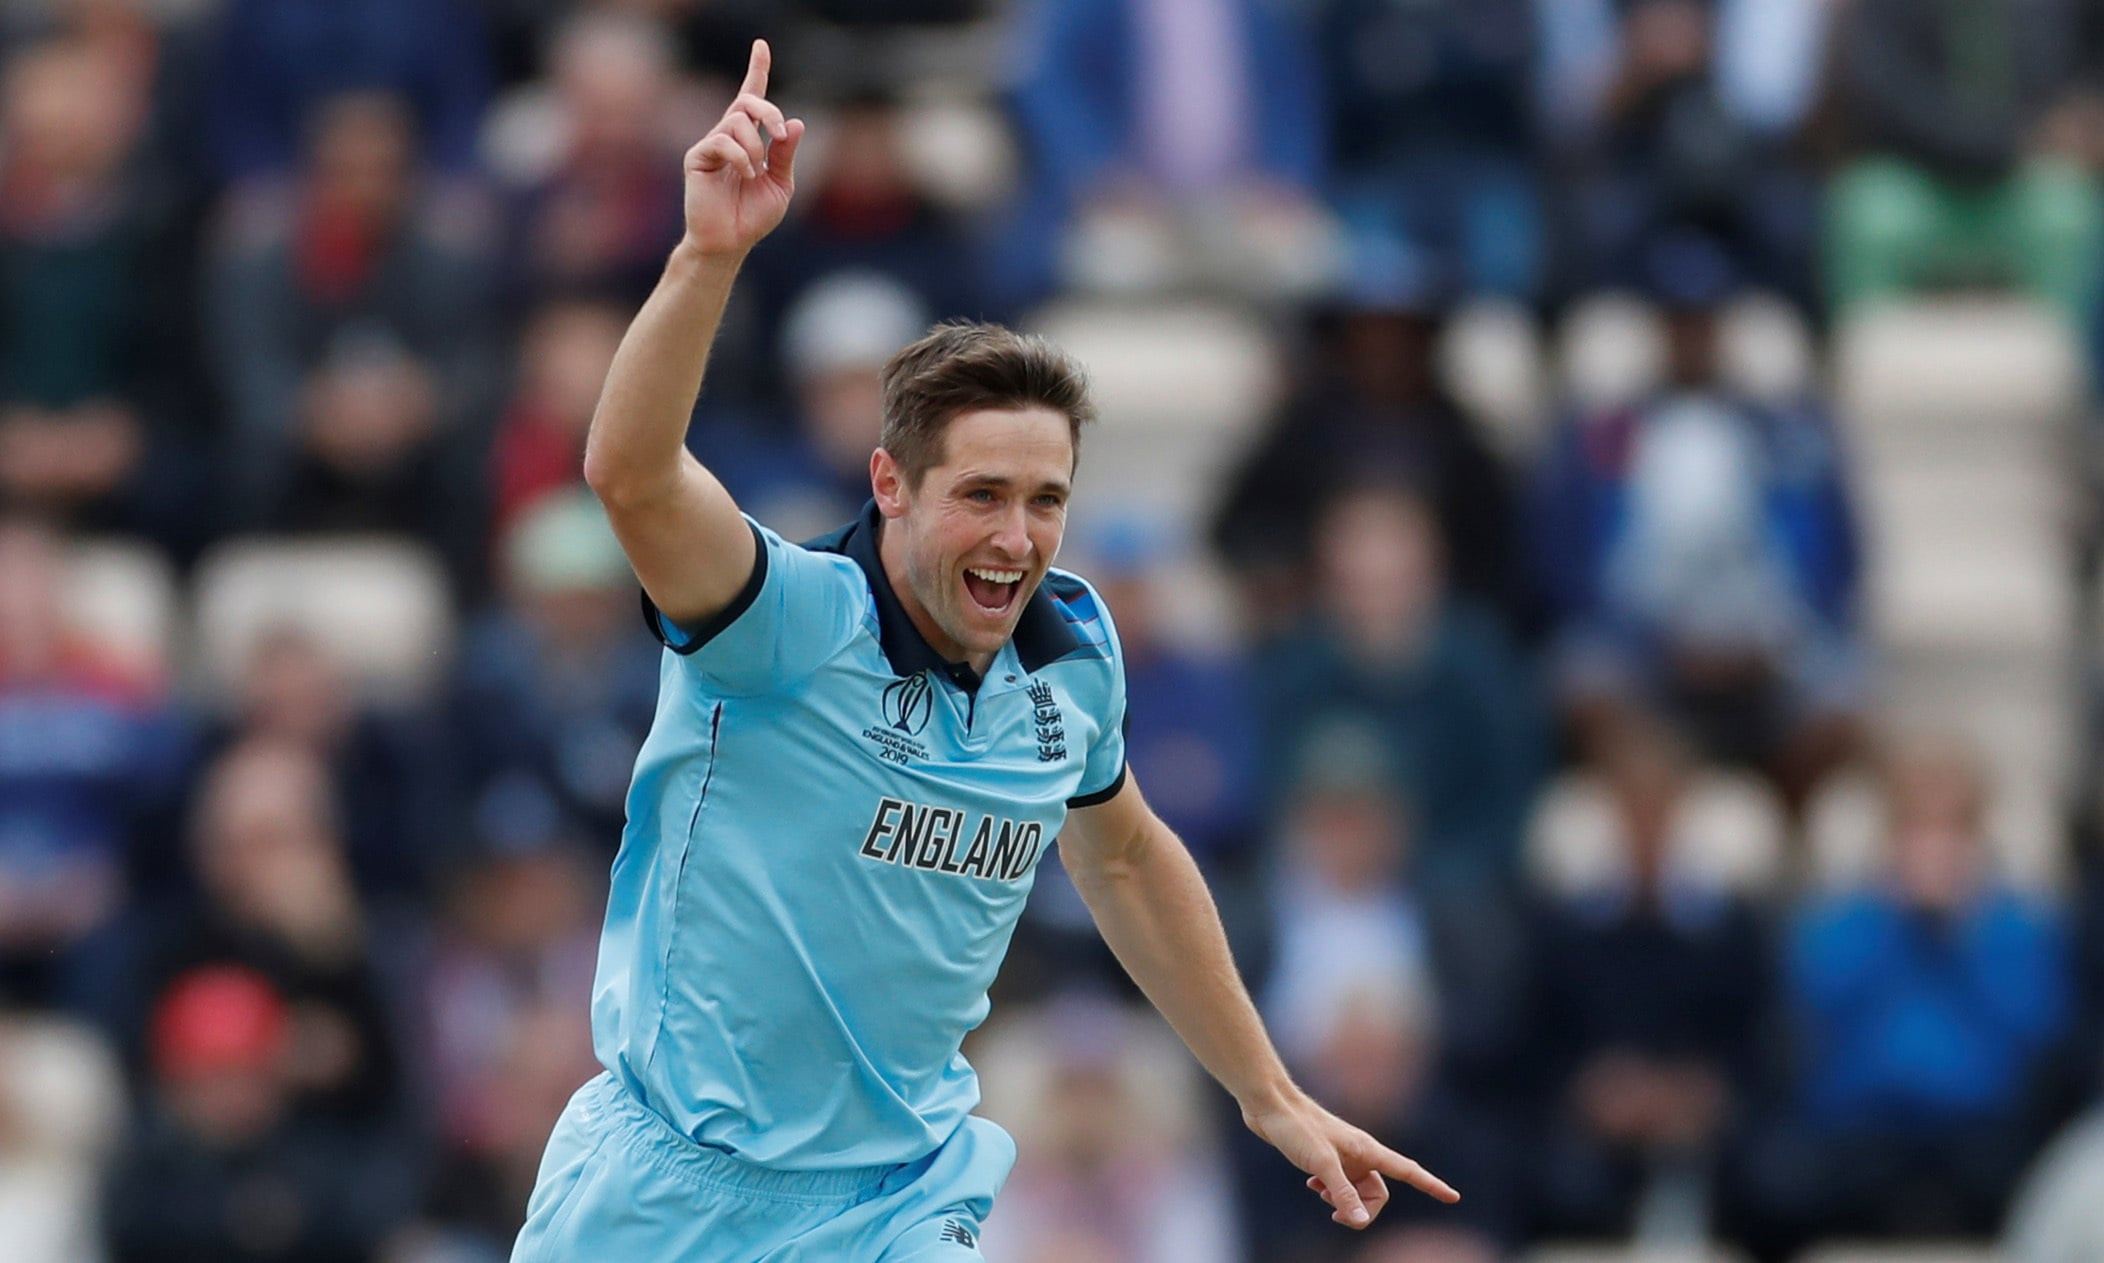 Woakes celebrates taking the wicket of West Indies Evin Lewis. — Reuters